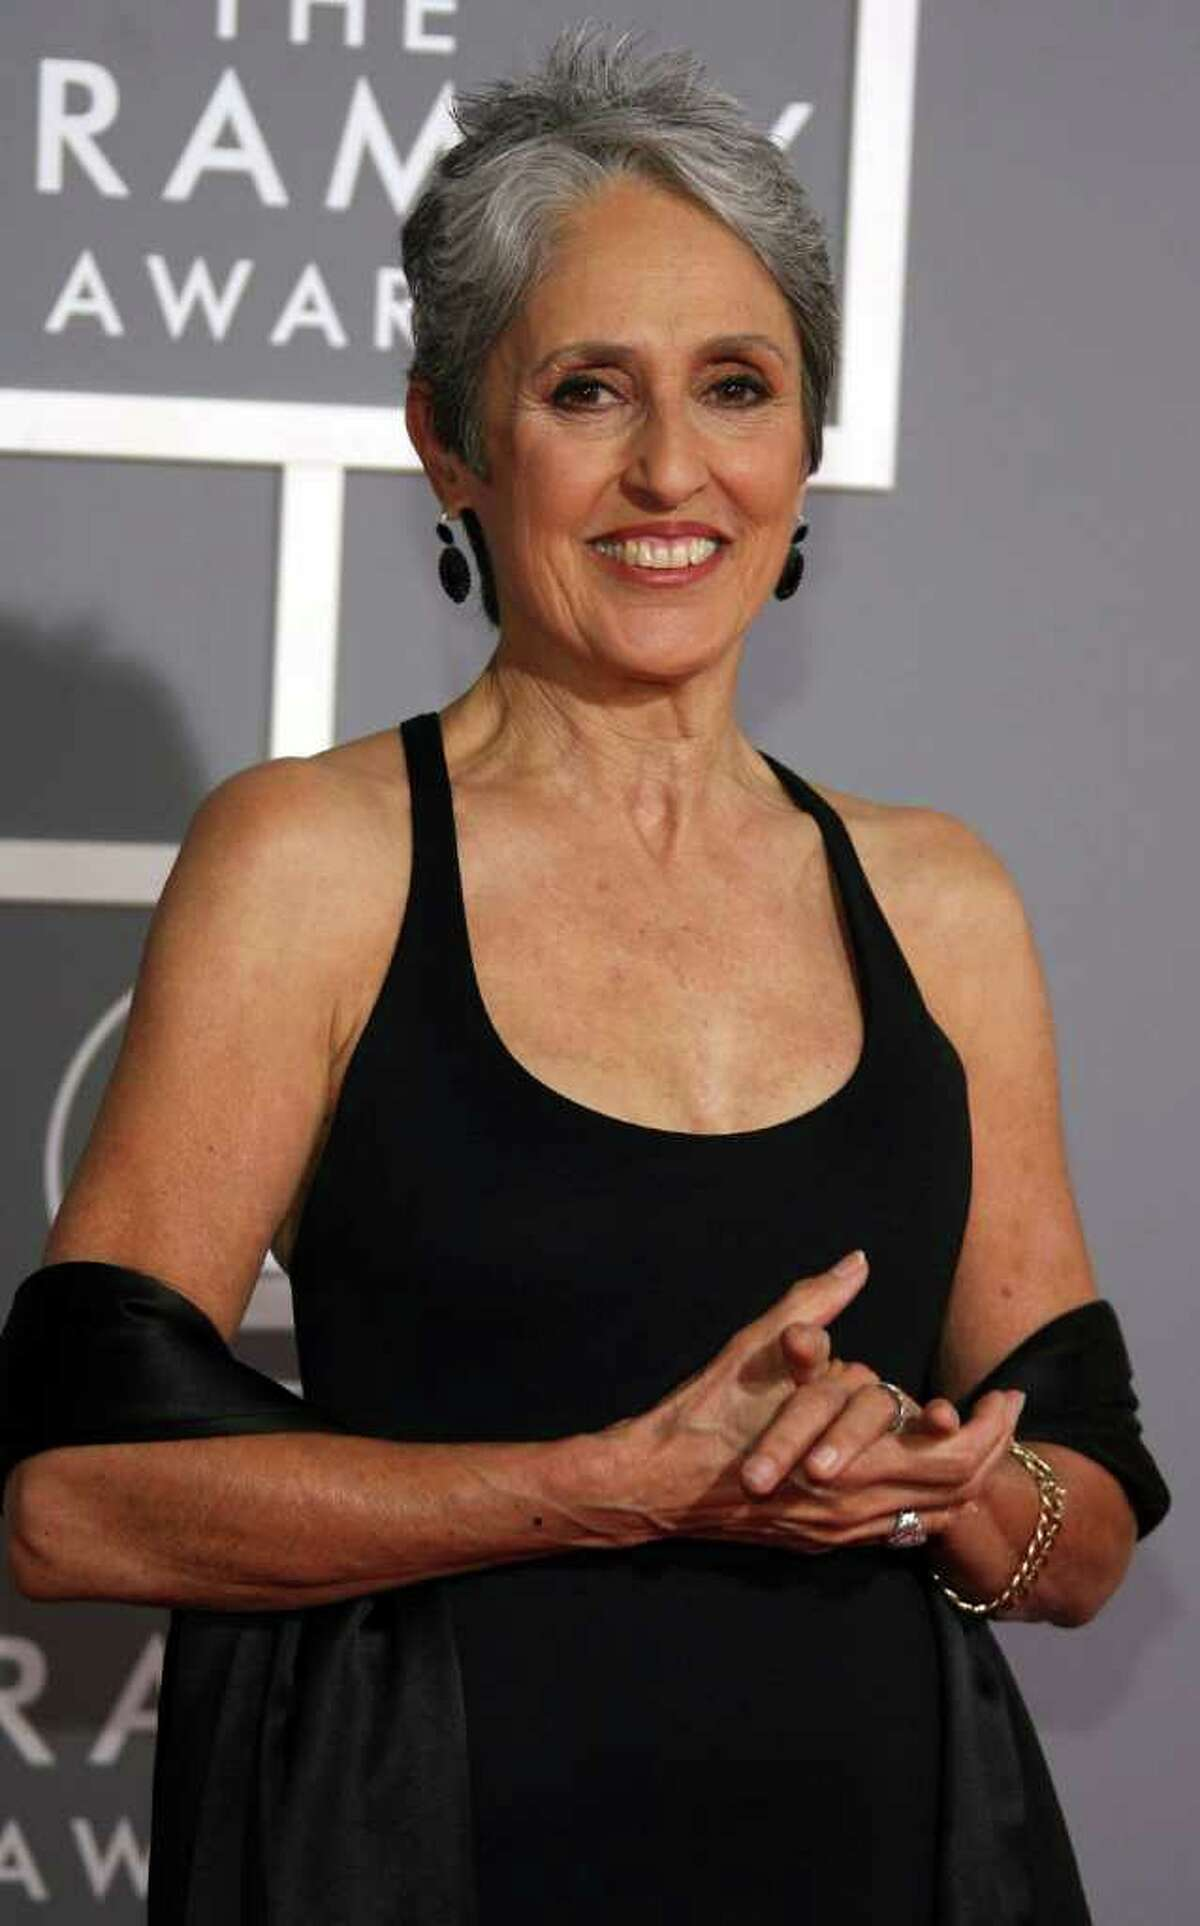 Musician Joan Baez arrives at the 49th Annual Grammy Awards at the Staples Center on Feb. 11, 2007, in Los Angeles. She will be performing in Stamford at the Palace Theatre, Tuesday, Nov. 15. (Frazer Harrison/Getty Images)